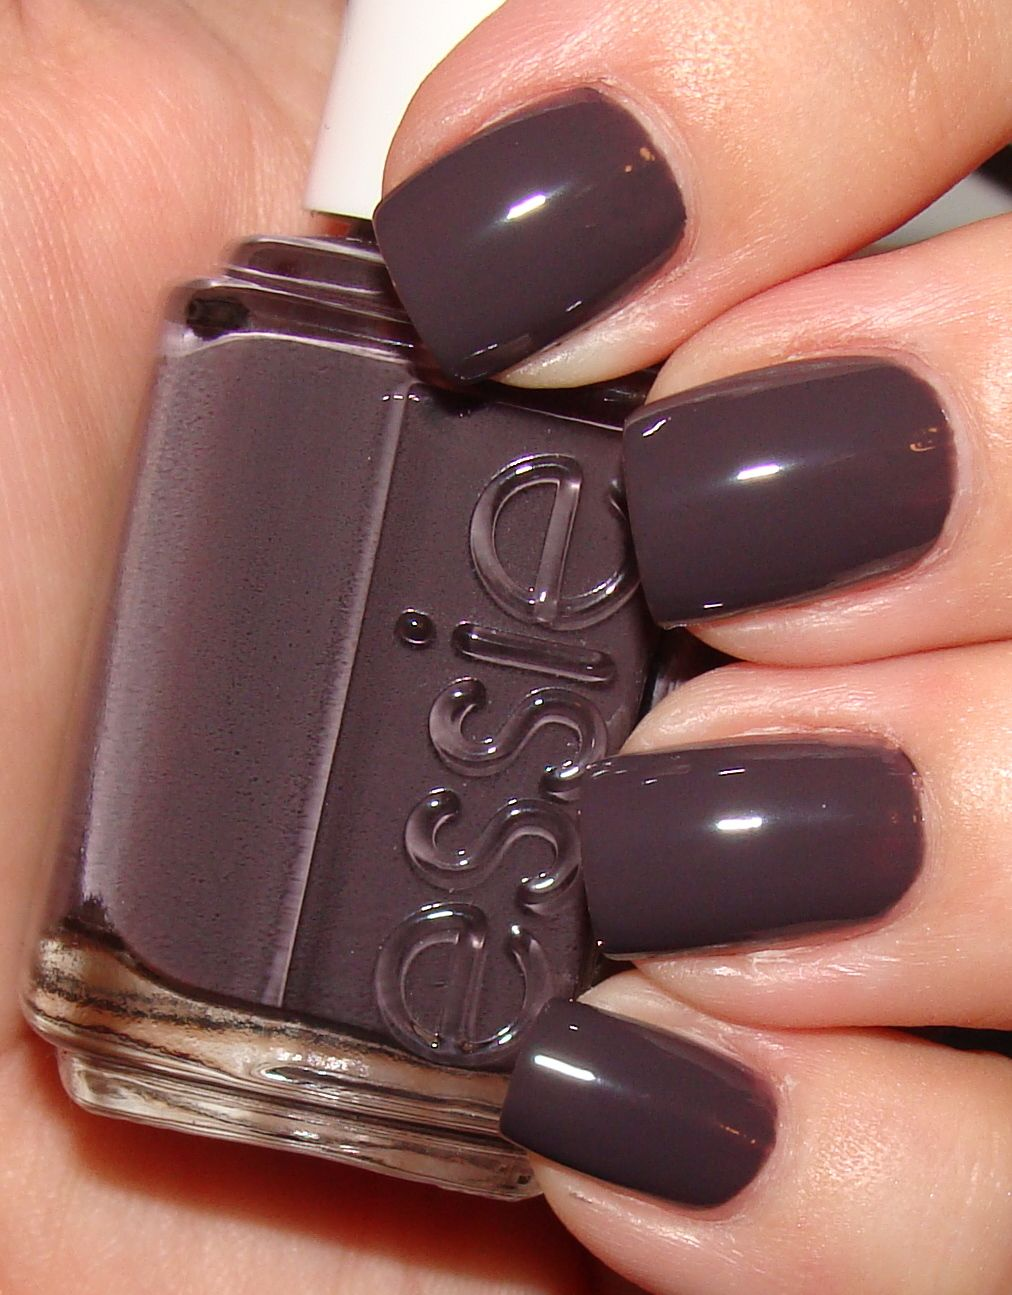 Essie Smokin Hot Is One Of My Favorite Colors At The Moment Pretty For Fall Essie Nail Nail Colors Nails